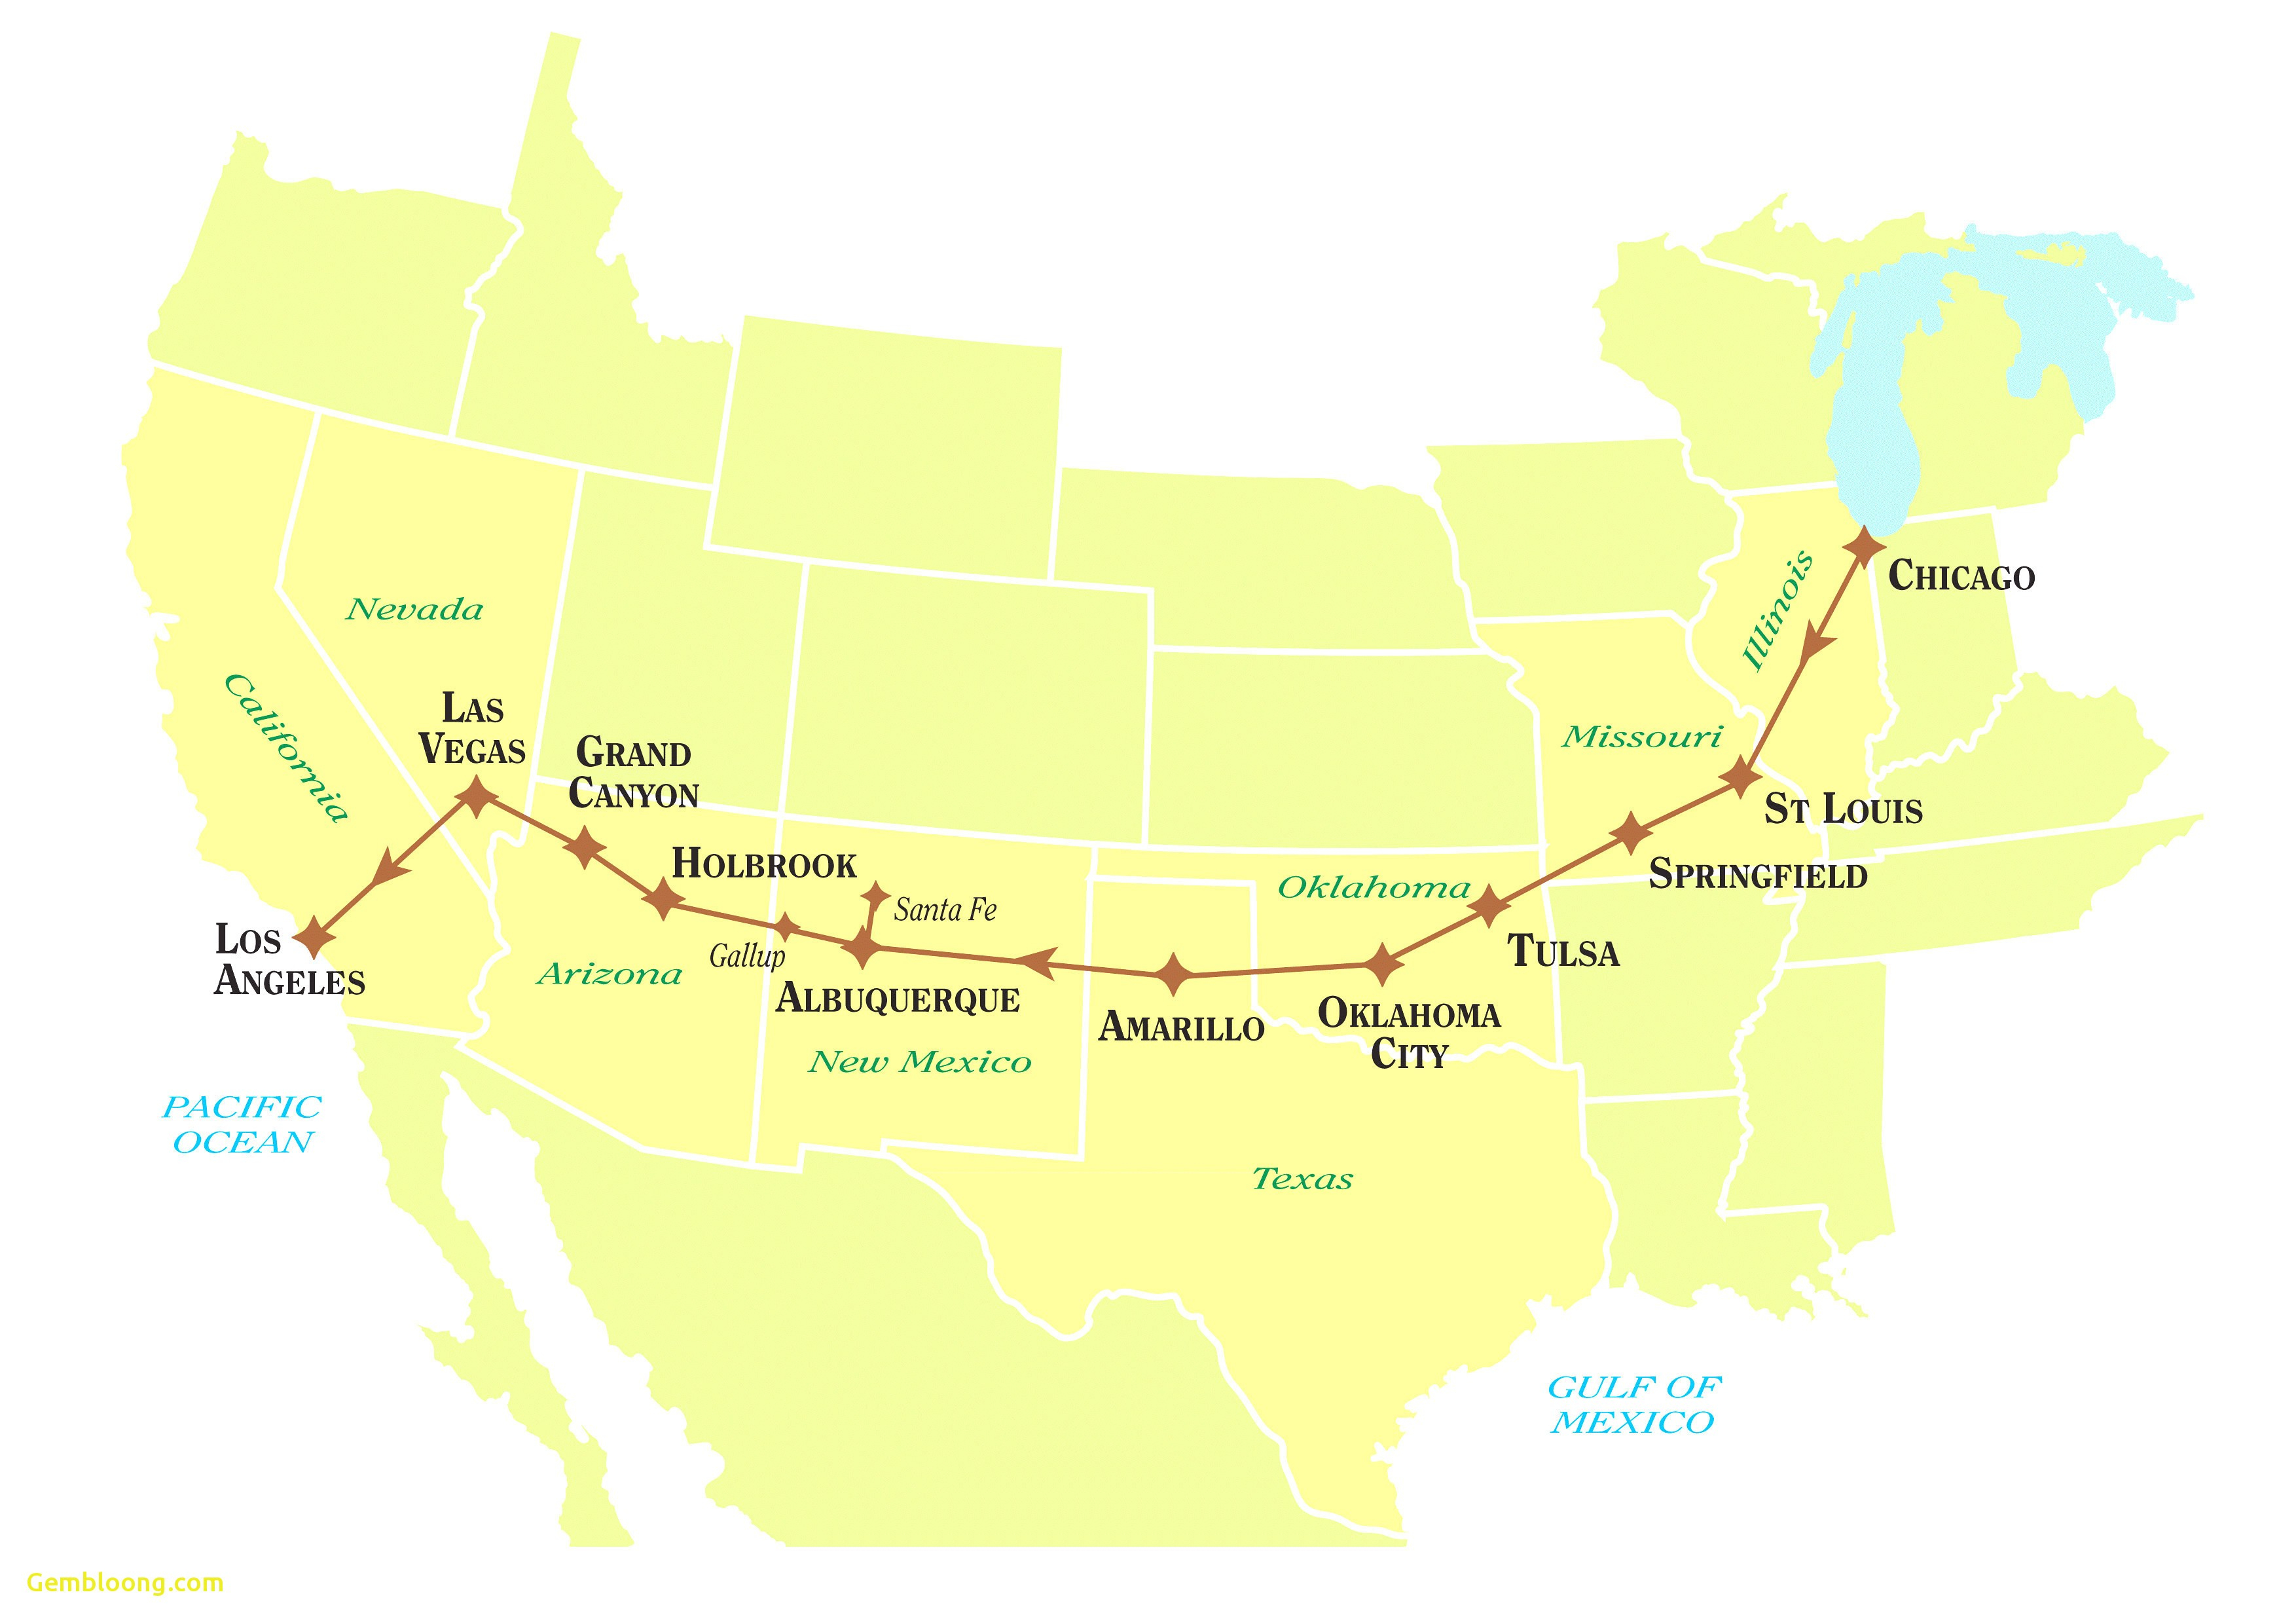 United States Map Showing Route 66 Inspirationa Map Route 66 From - Map Of Route 66 From Chicago To California